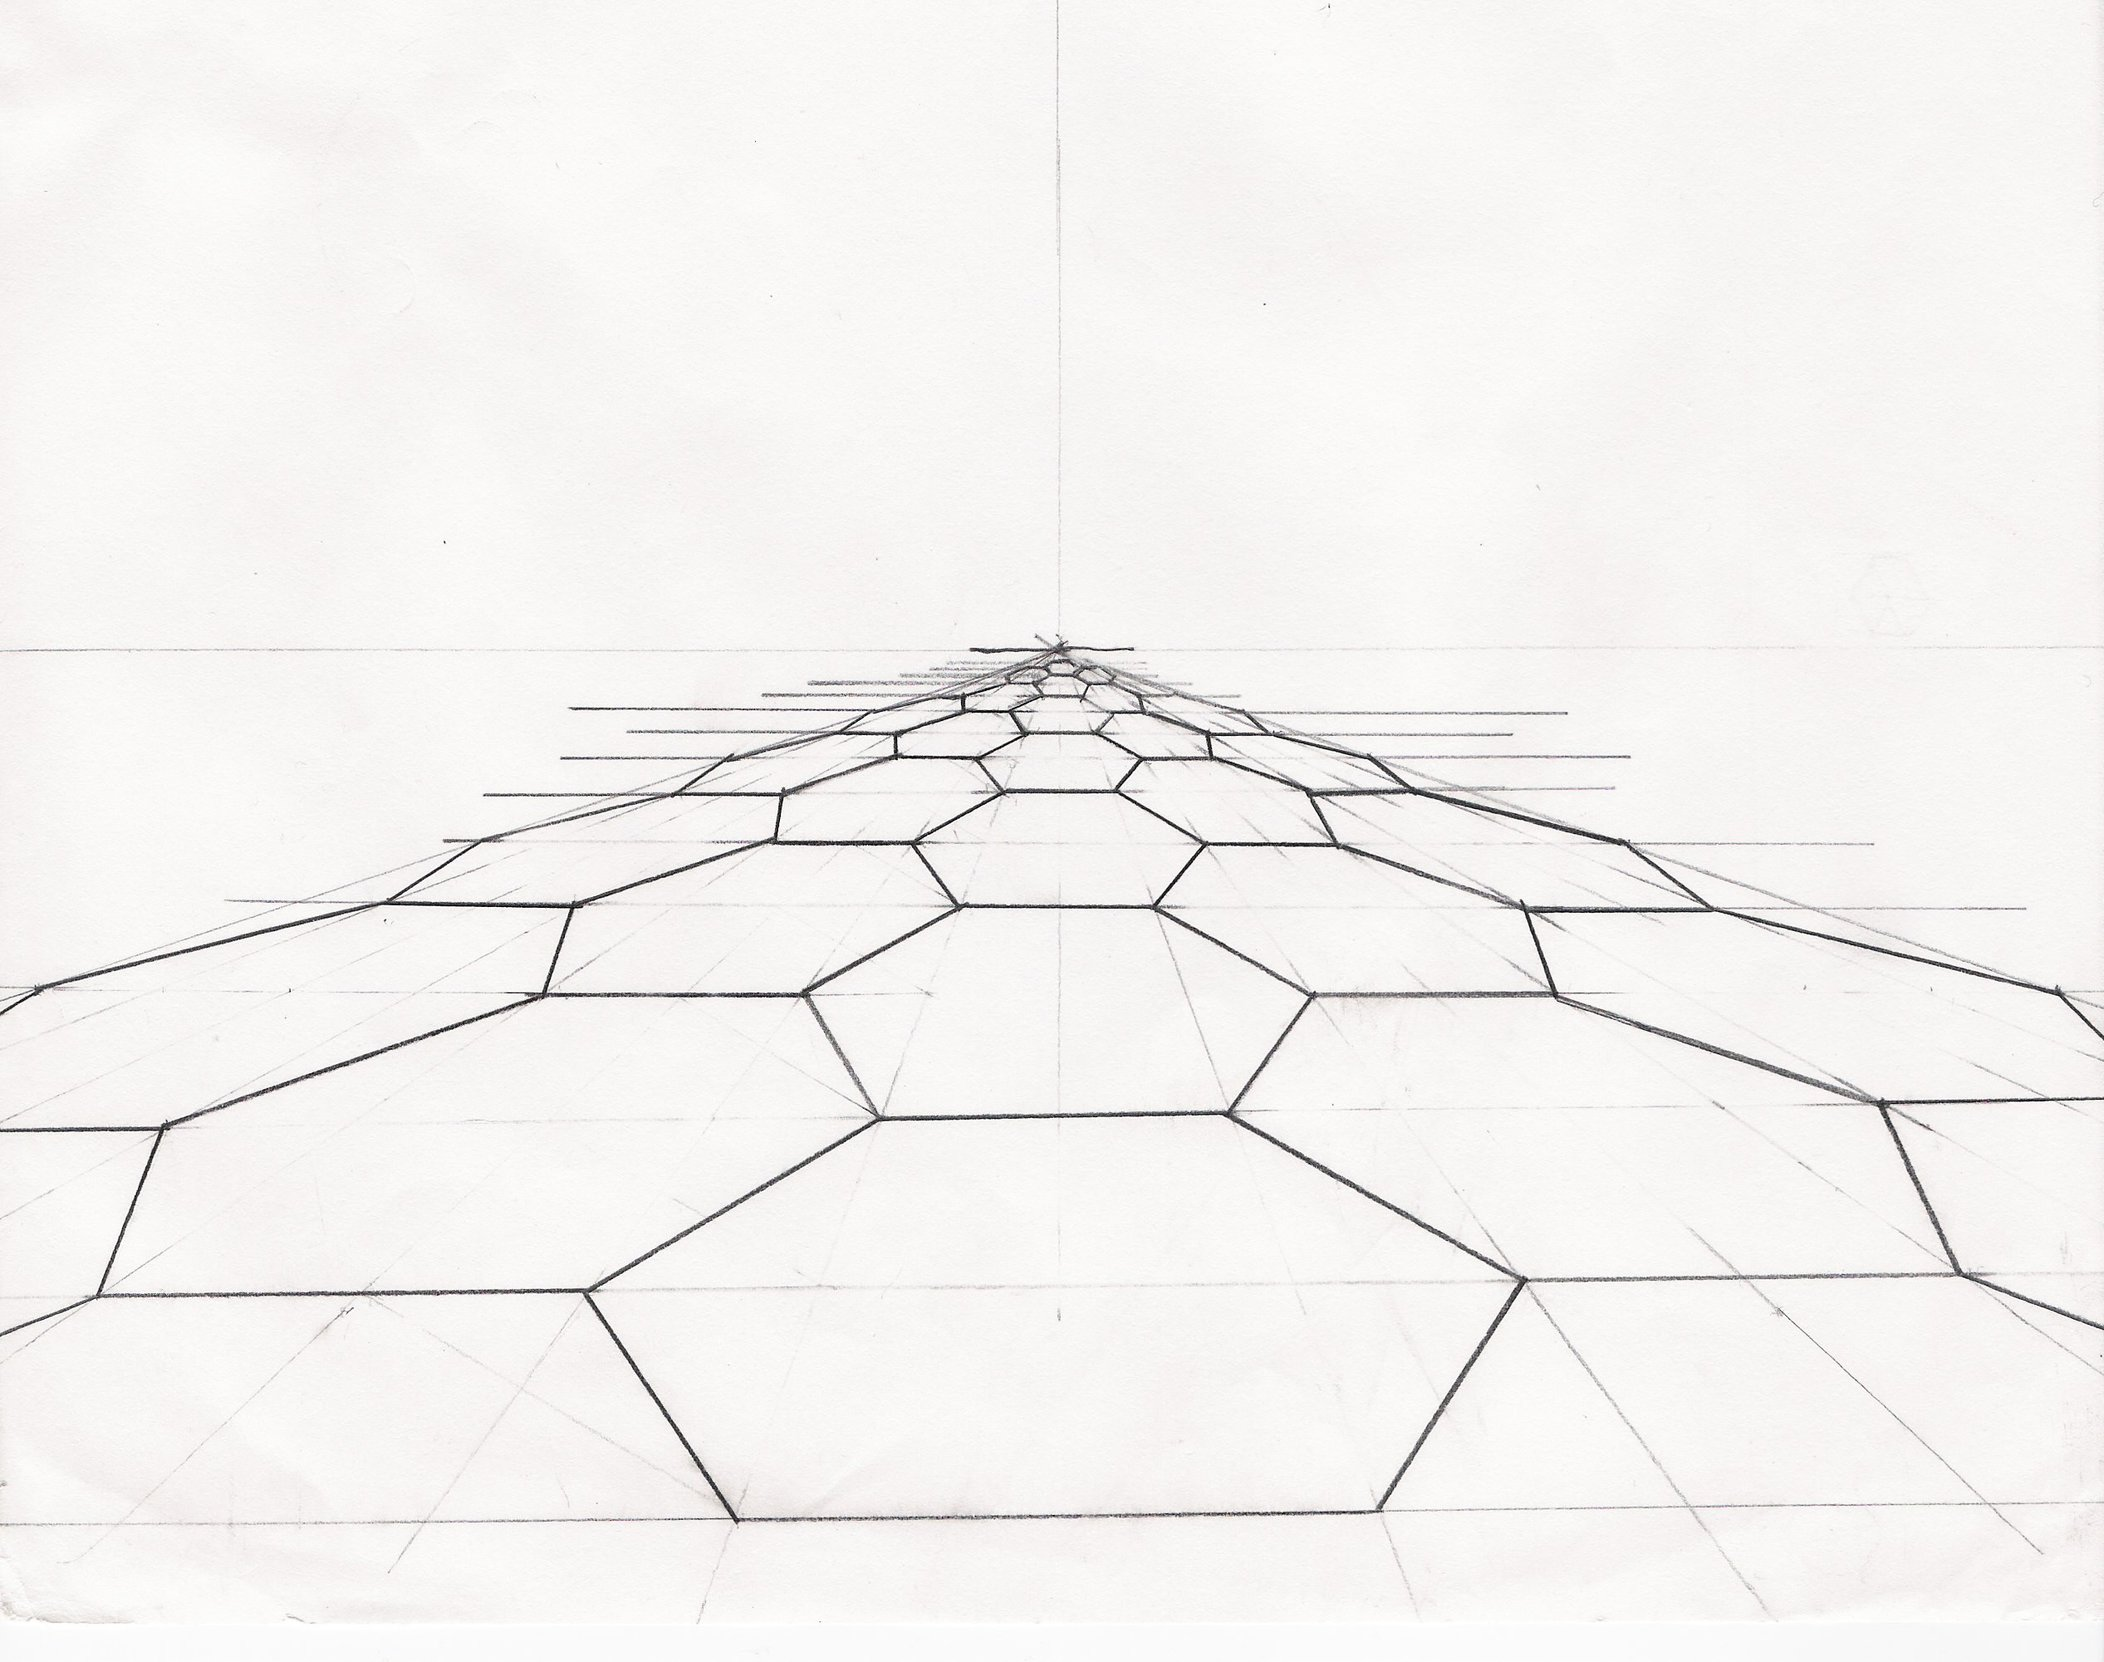 2104x1662 Hexagons In Perspective By Fennecuskitsune